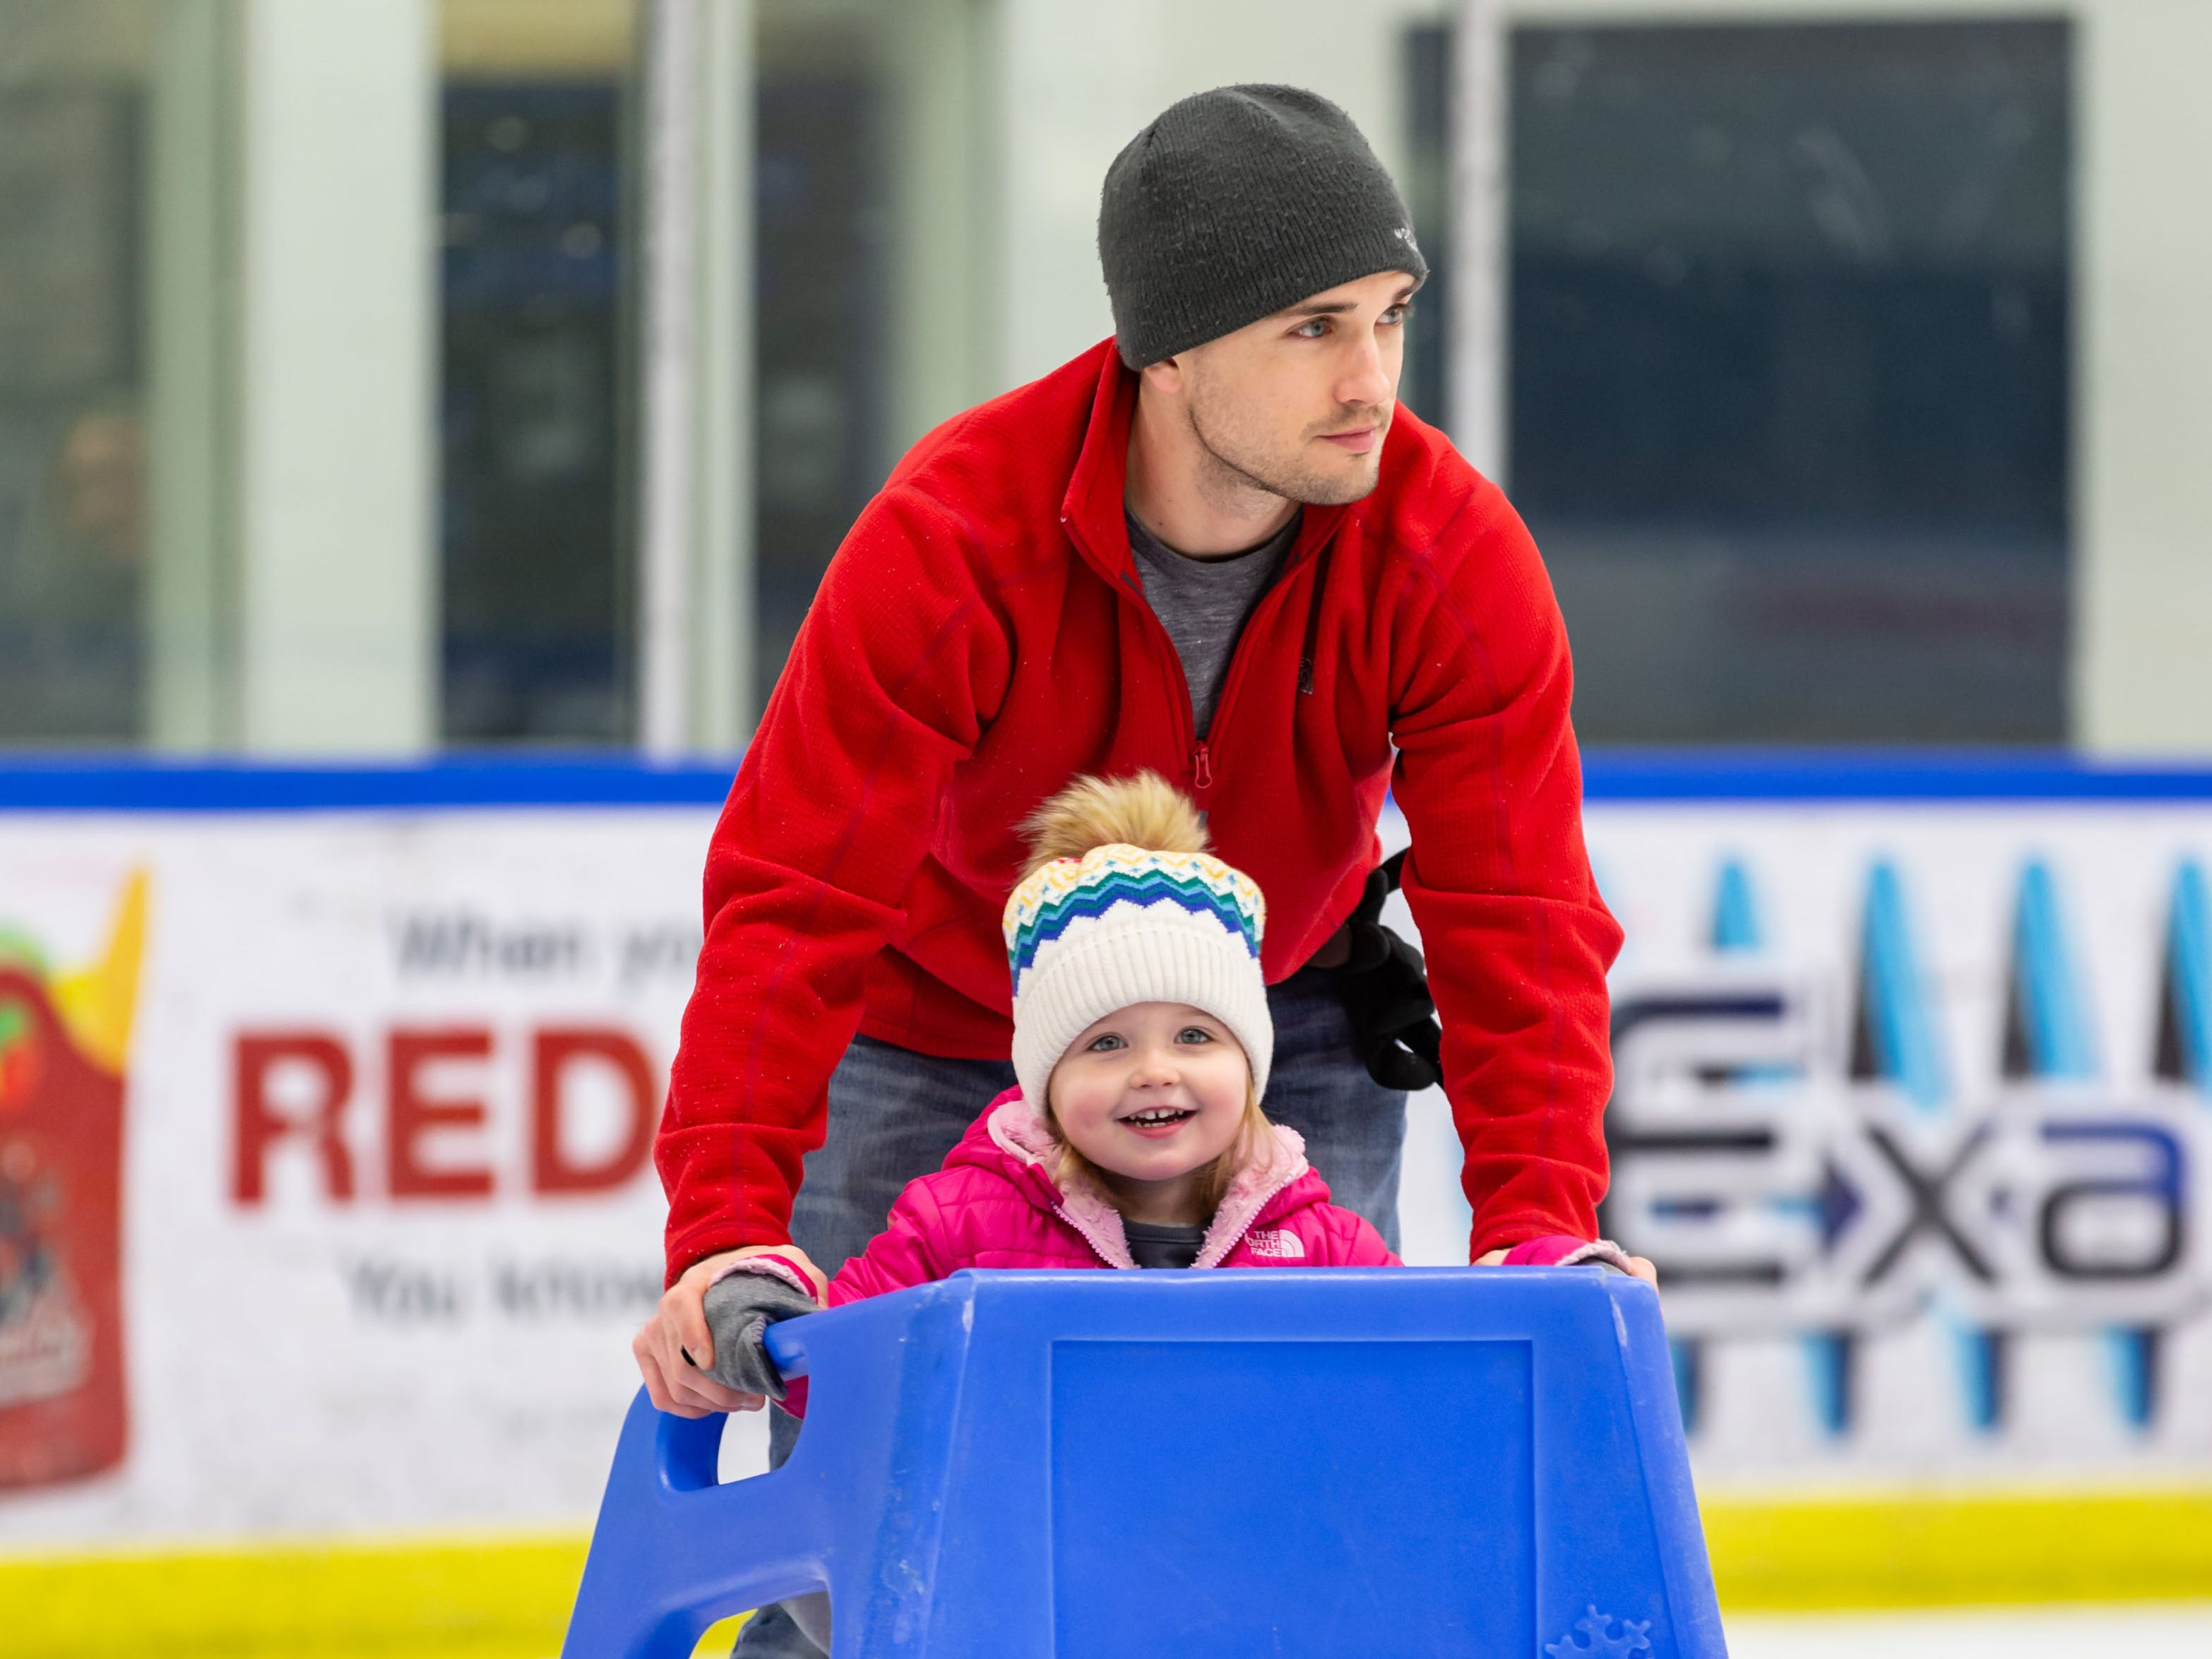 Three-year-old Maddie Lechtenberg and her father John of Grafton zoom around the Ozaukee Ice Center in Mequon during public skating hours on Saturday, Dec. 22, 2018. The center offers public skating between 12:15 p.m. and 2:15 p.m. on Saturdays and Sundays.